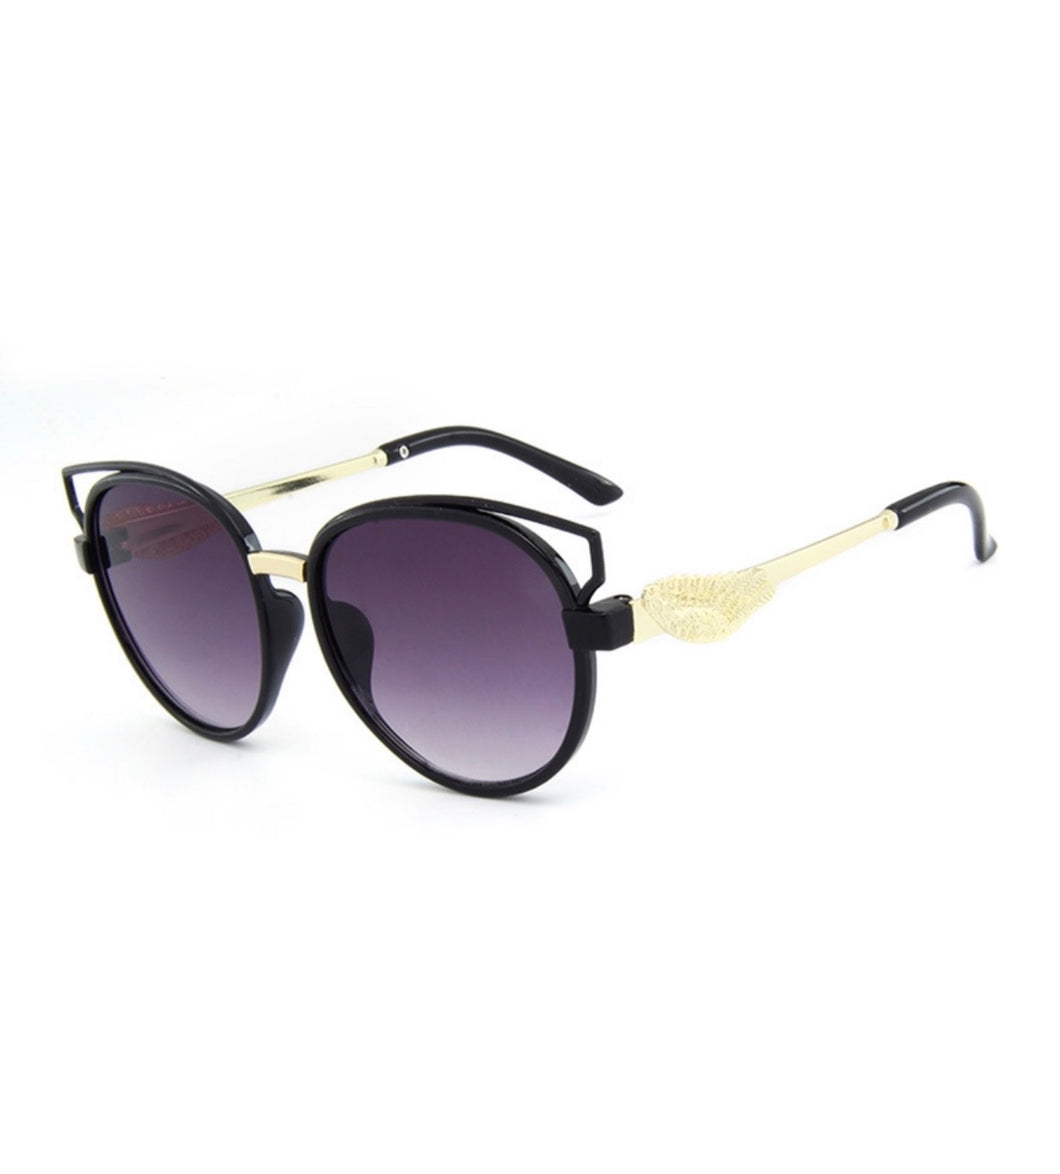 S042 - Black & Gold Sunglass